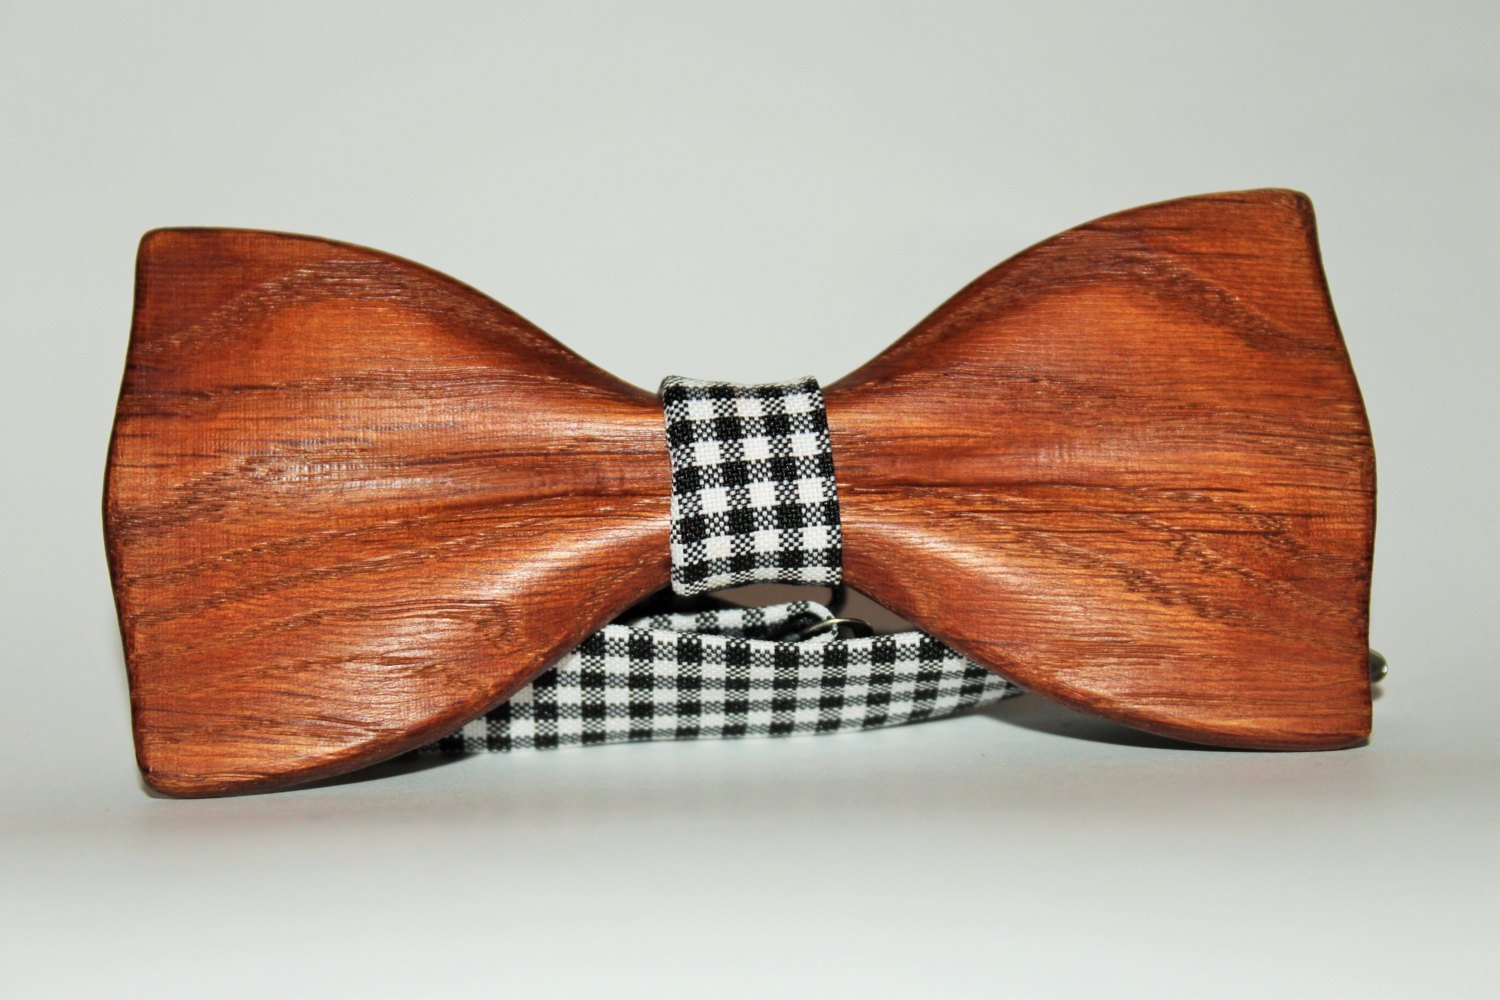 Bow tie from oak wood with pocket square. Men's wooden bow tie. Wooden bow tie.